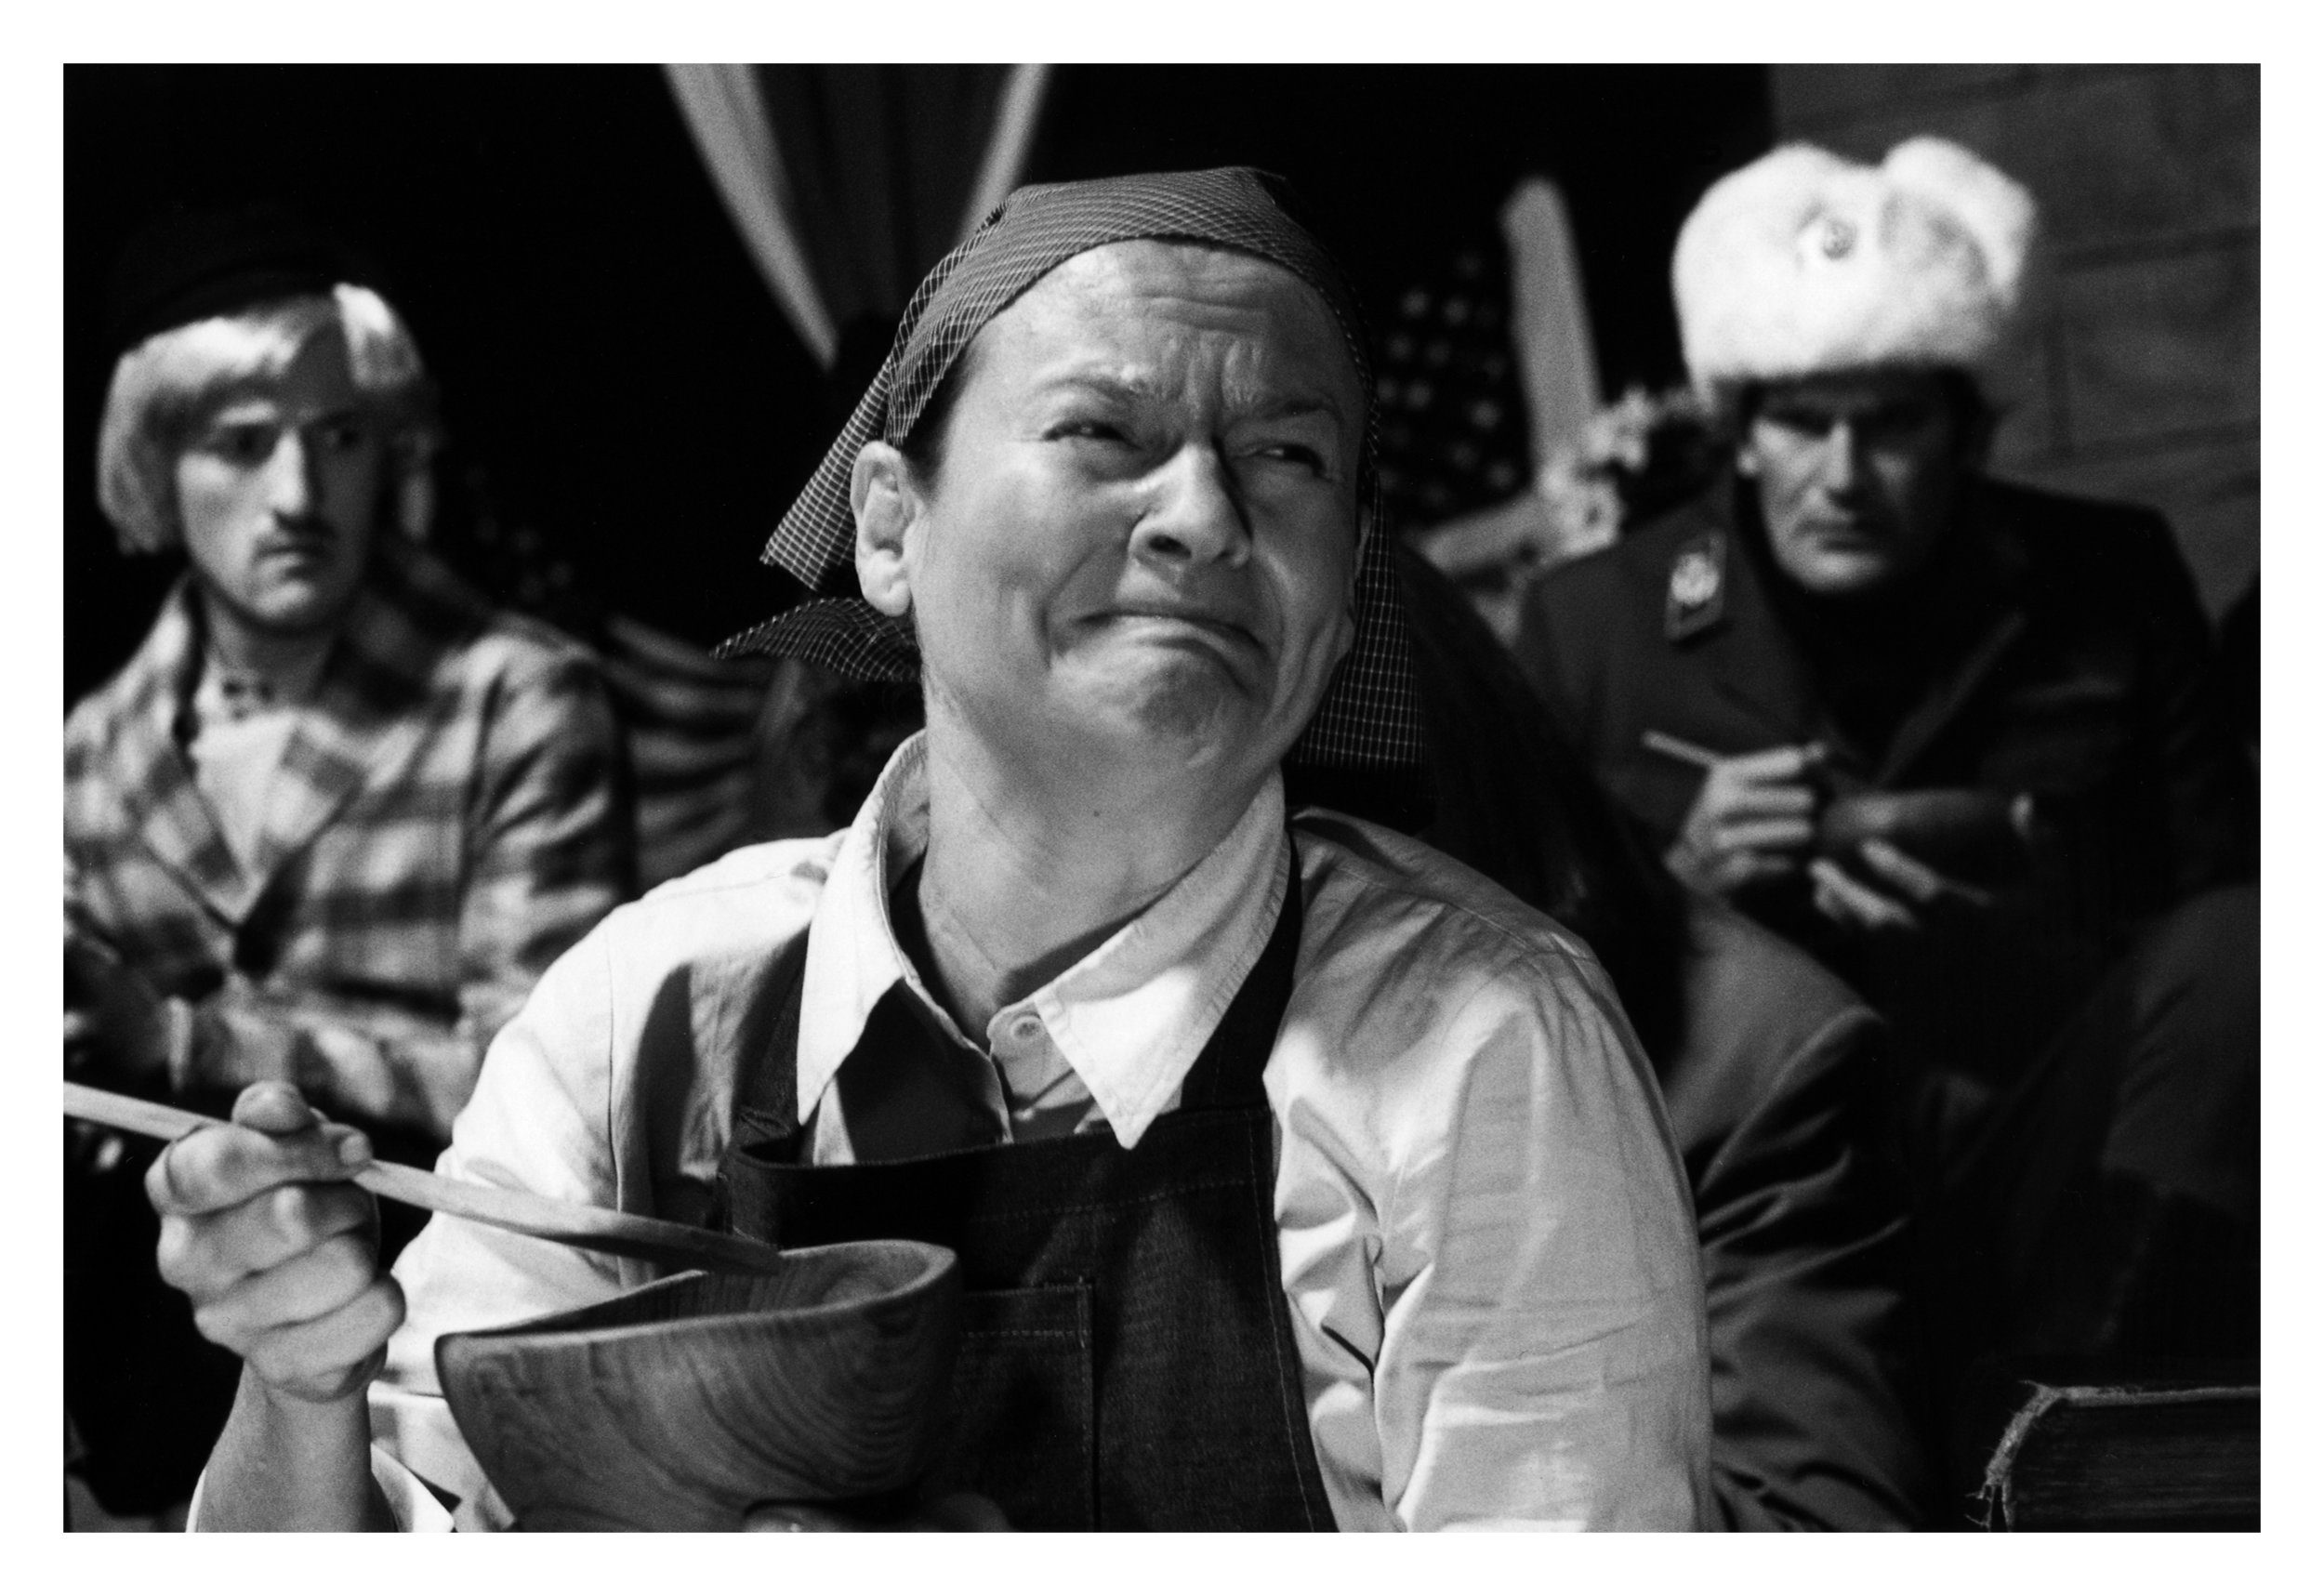 """Catherine Sullivan, Poor Little Sanya Economic Parable (suite E) , from """"Ice Floes of Franz Joseph Land"""" series, 2004,edition of 7 black & white photographs from film, 20,3 x 25,4 cm"""